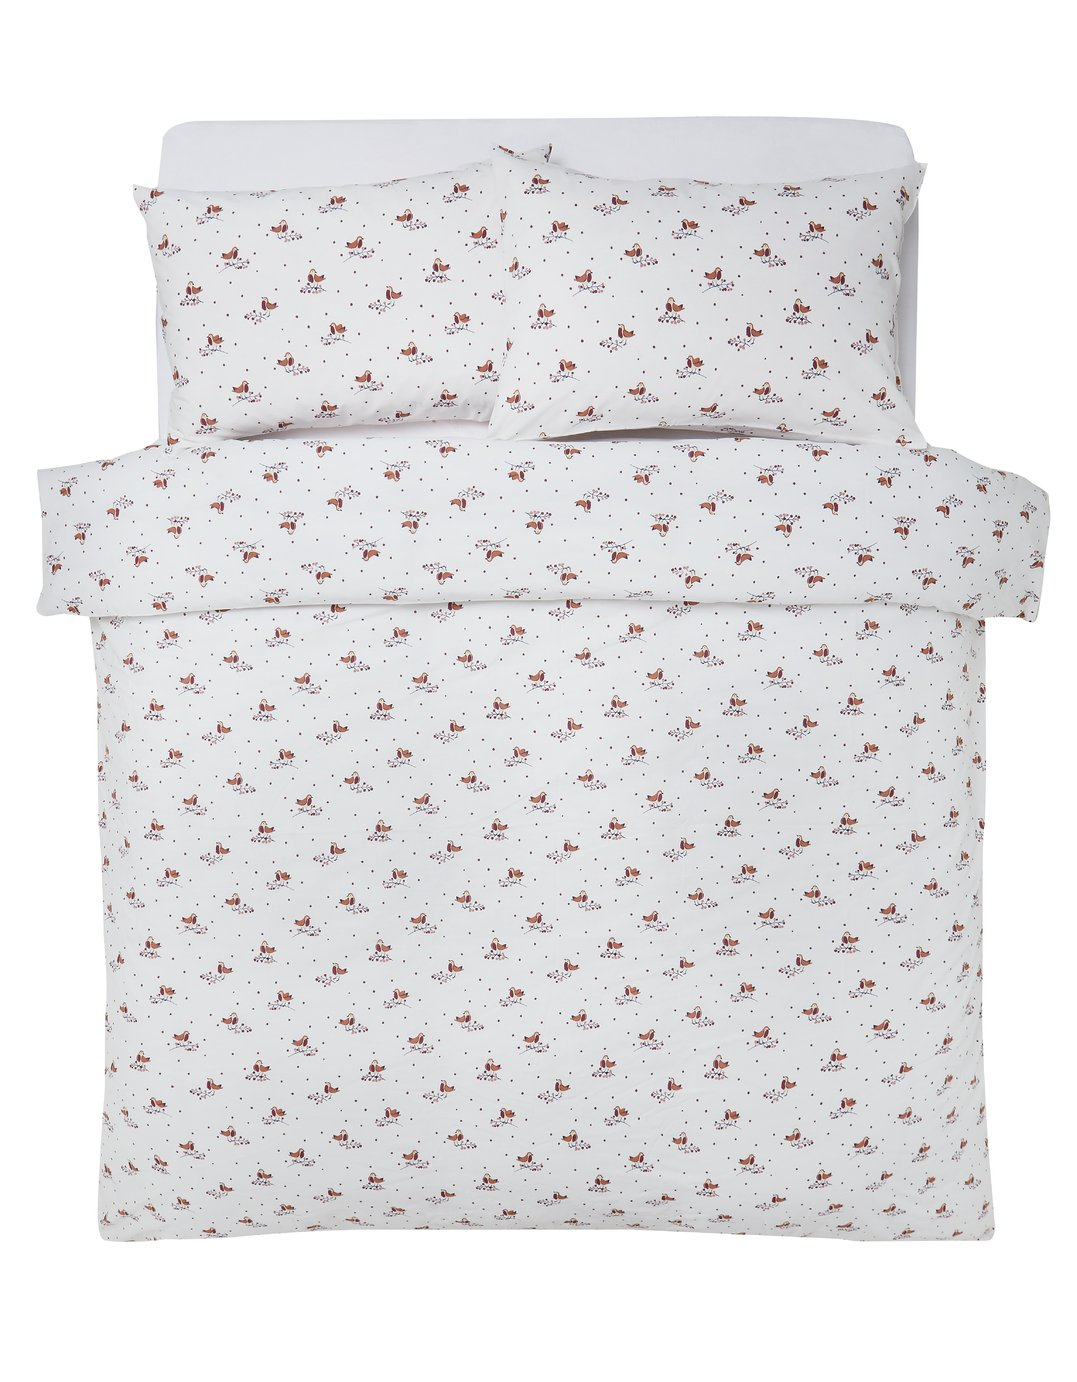 Argos Home Robin Bedding Set - Kingsize